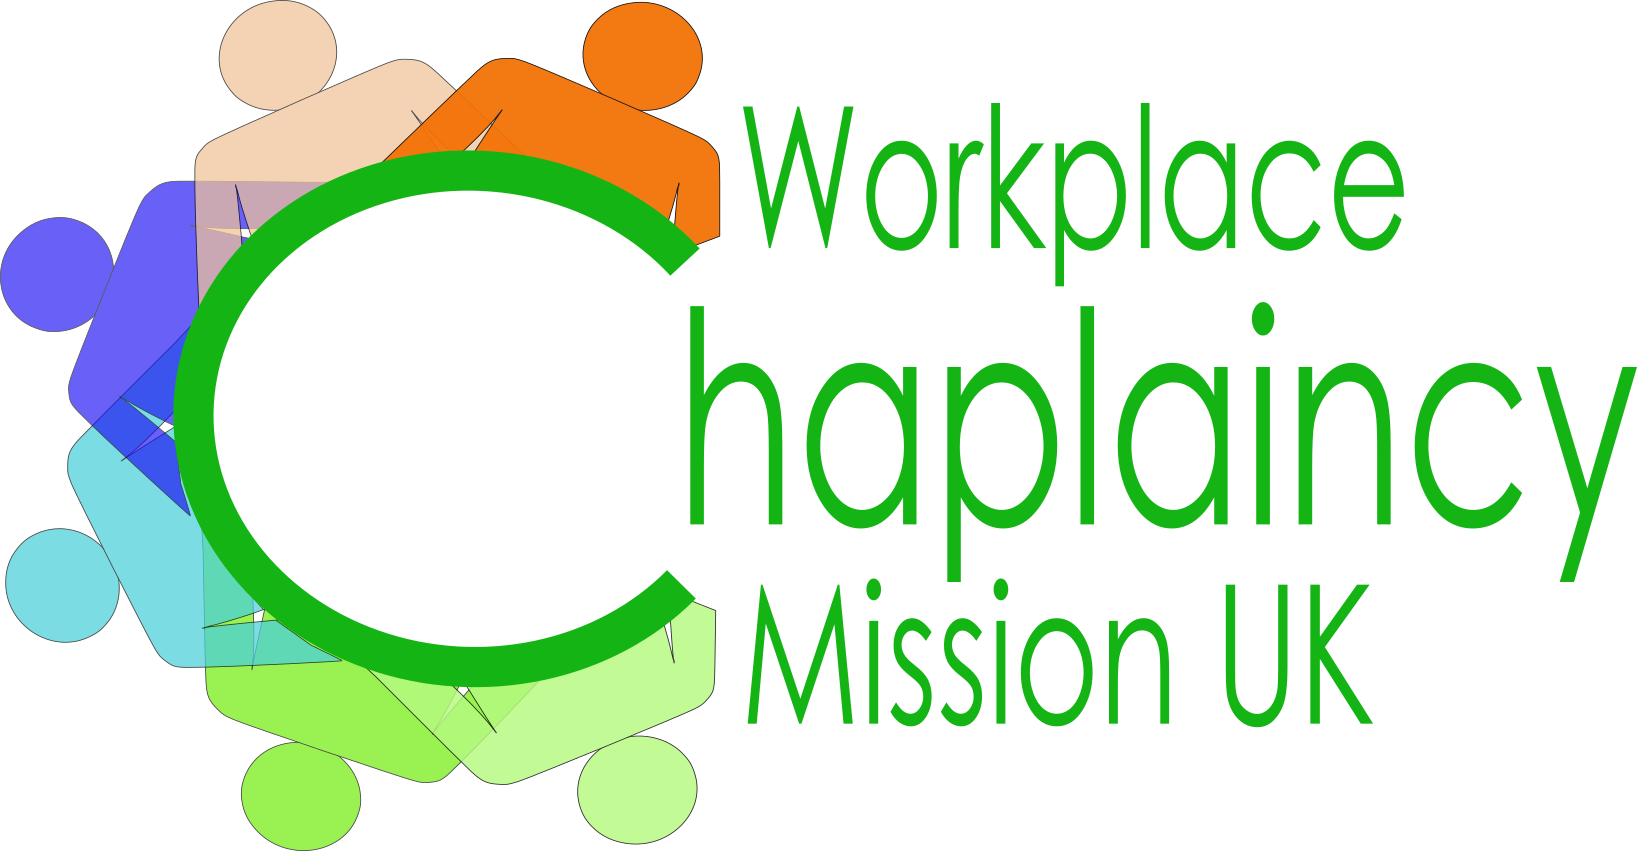 Workplace chaplaincy mission uk. Clipart church agm